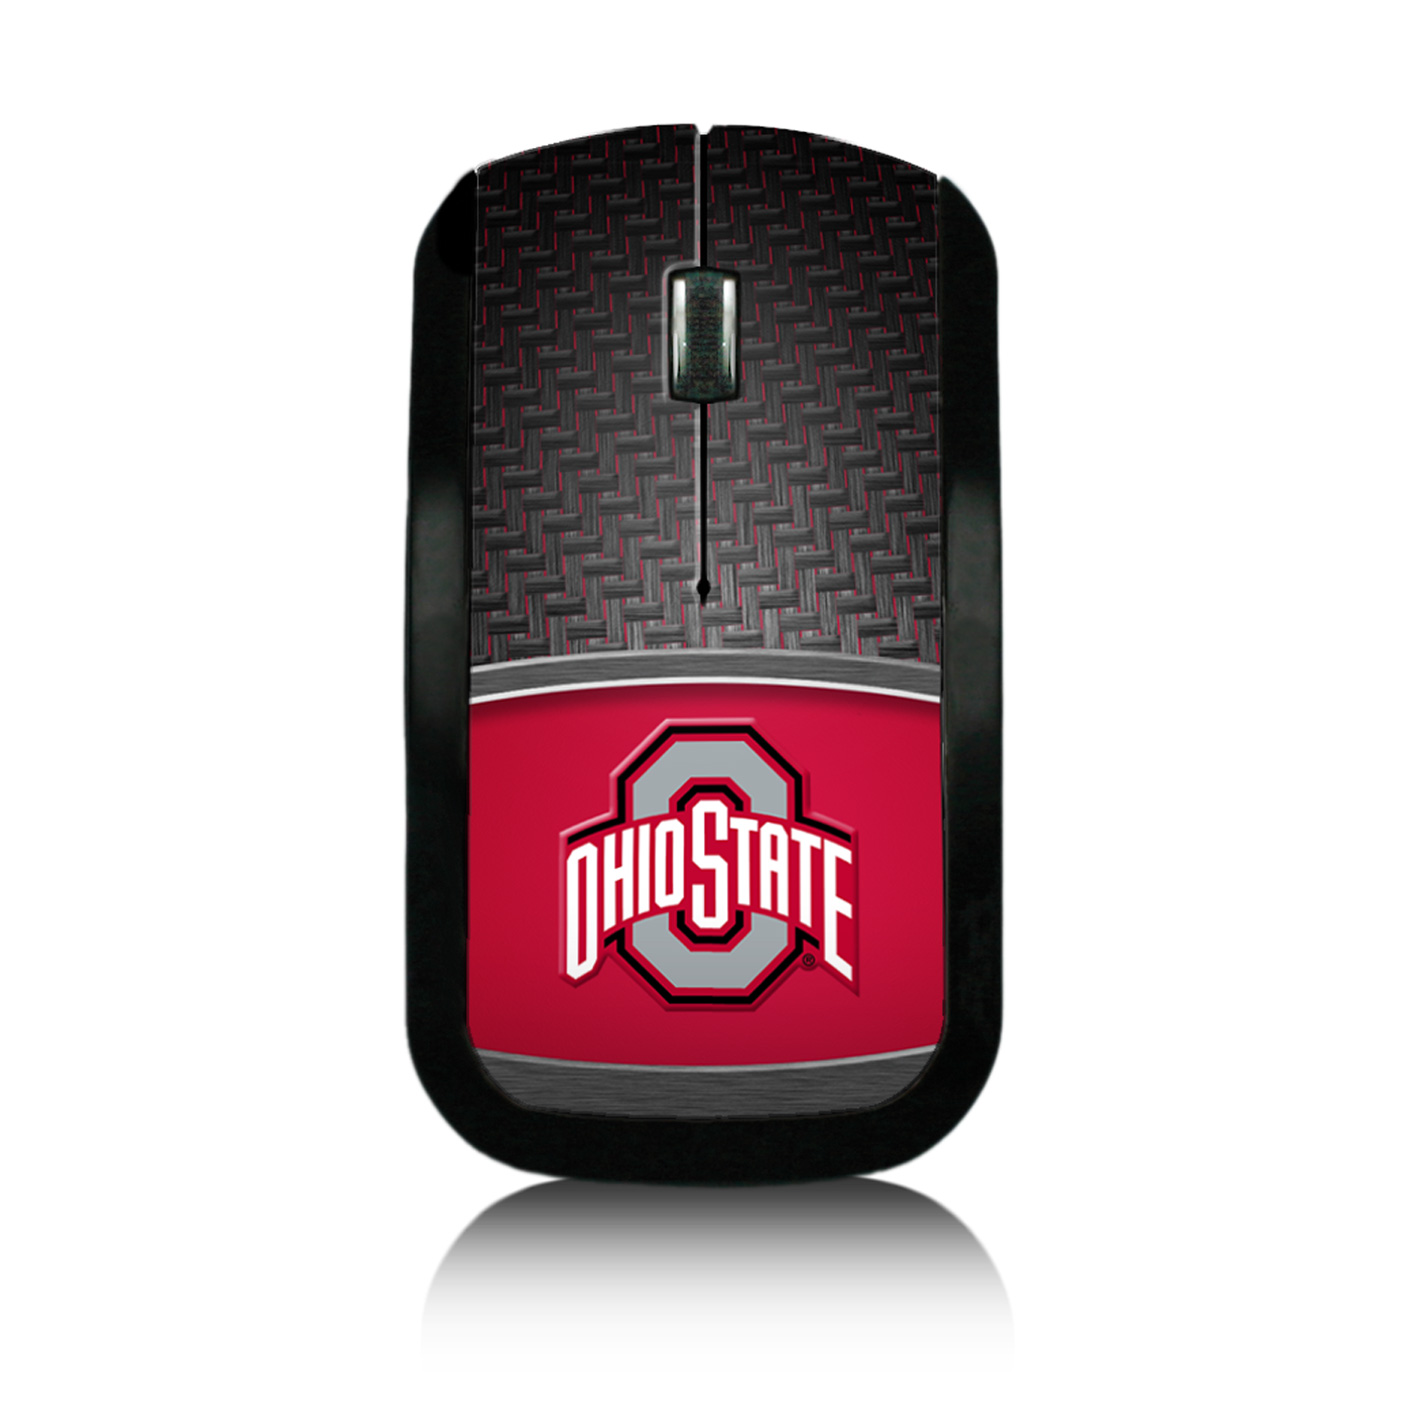 Ohio State University Wireless USB Mouse NCAA